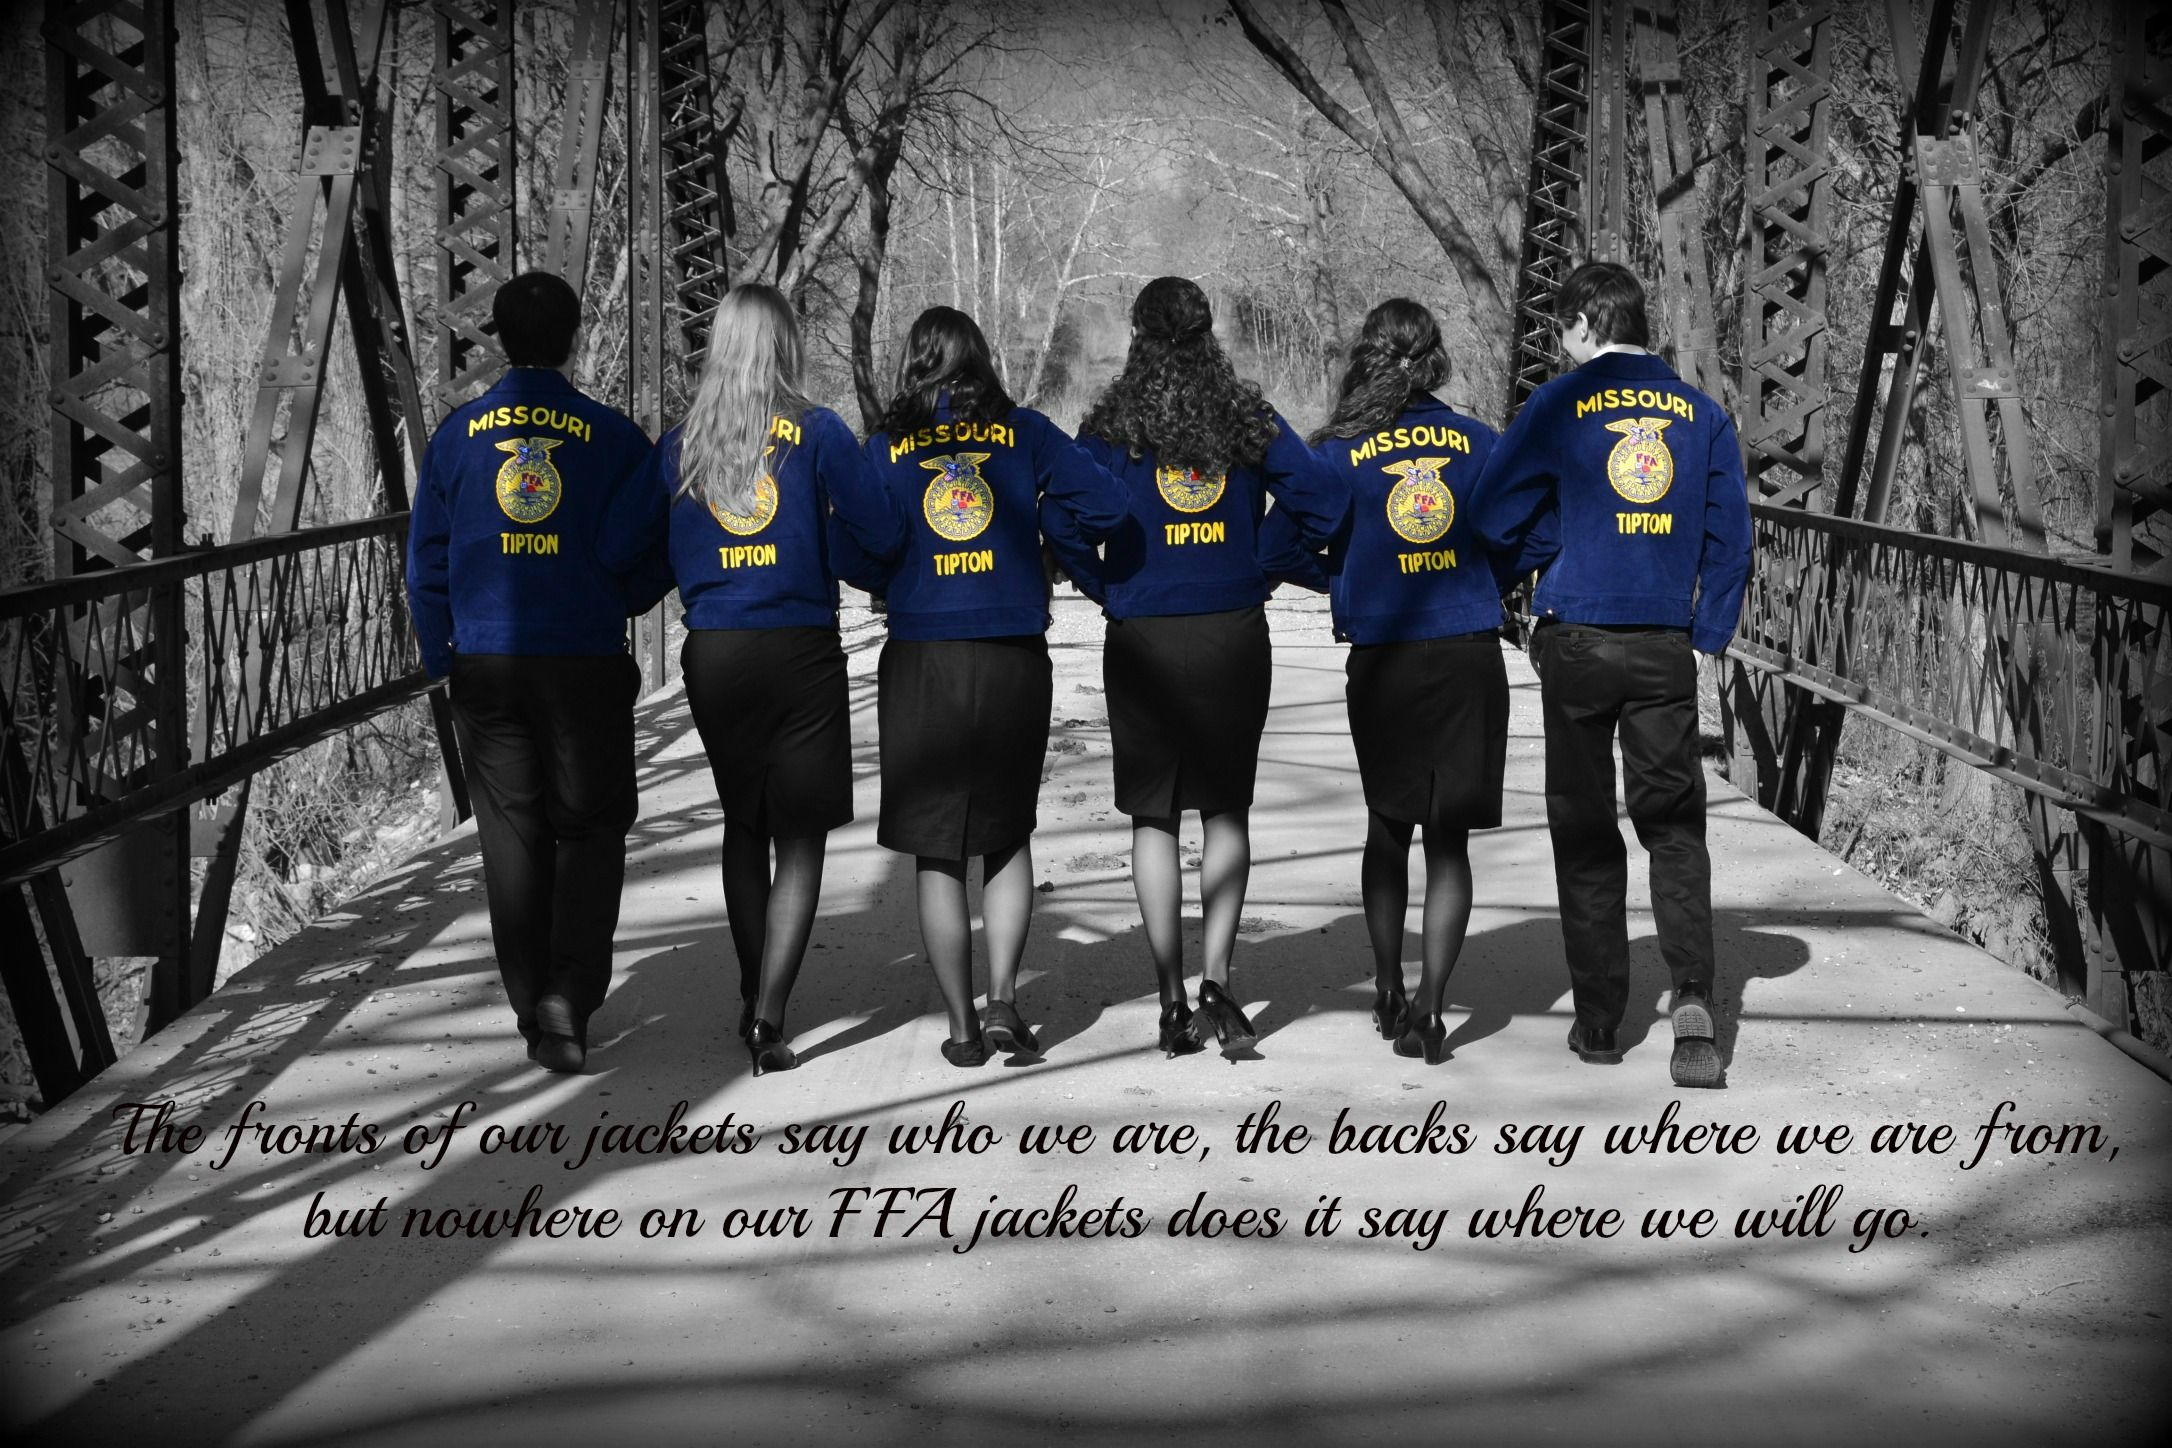 Our Senior Ffa Officer Picture The Quote Says The Fronts Of Our Jackets Say Who We Are The Backs Say Where We Are From Ffa Jacket Ffa Girl Senior Pictures